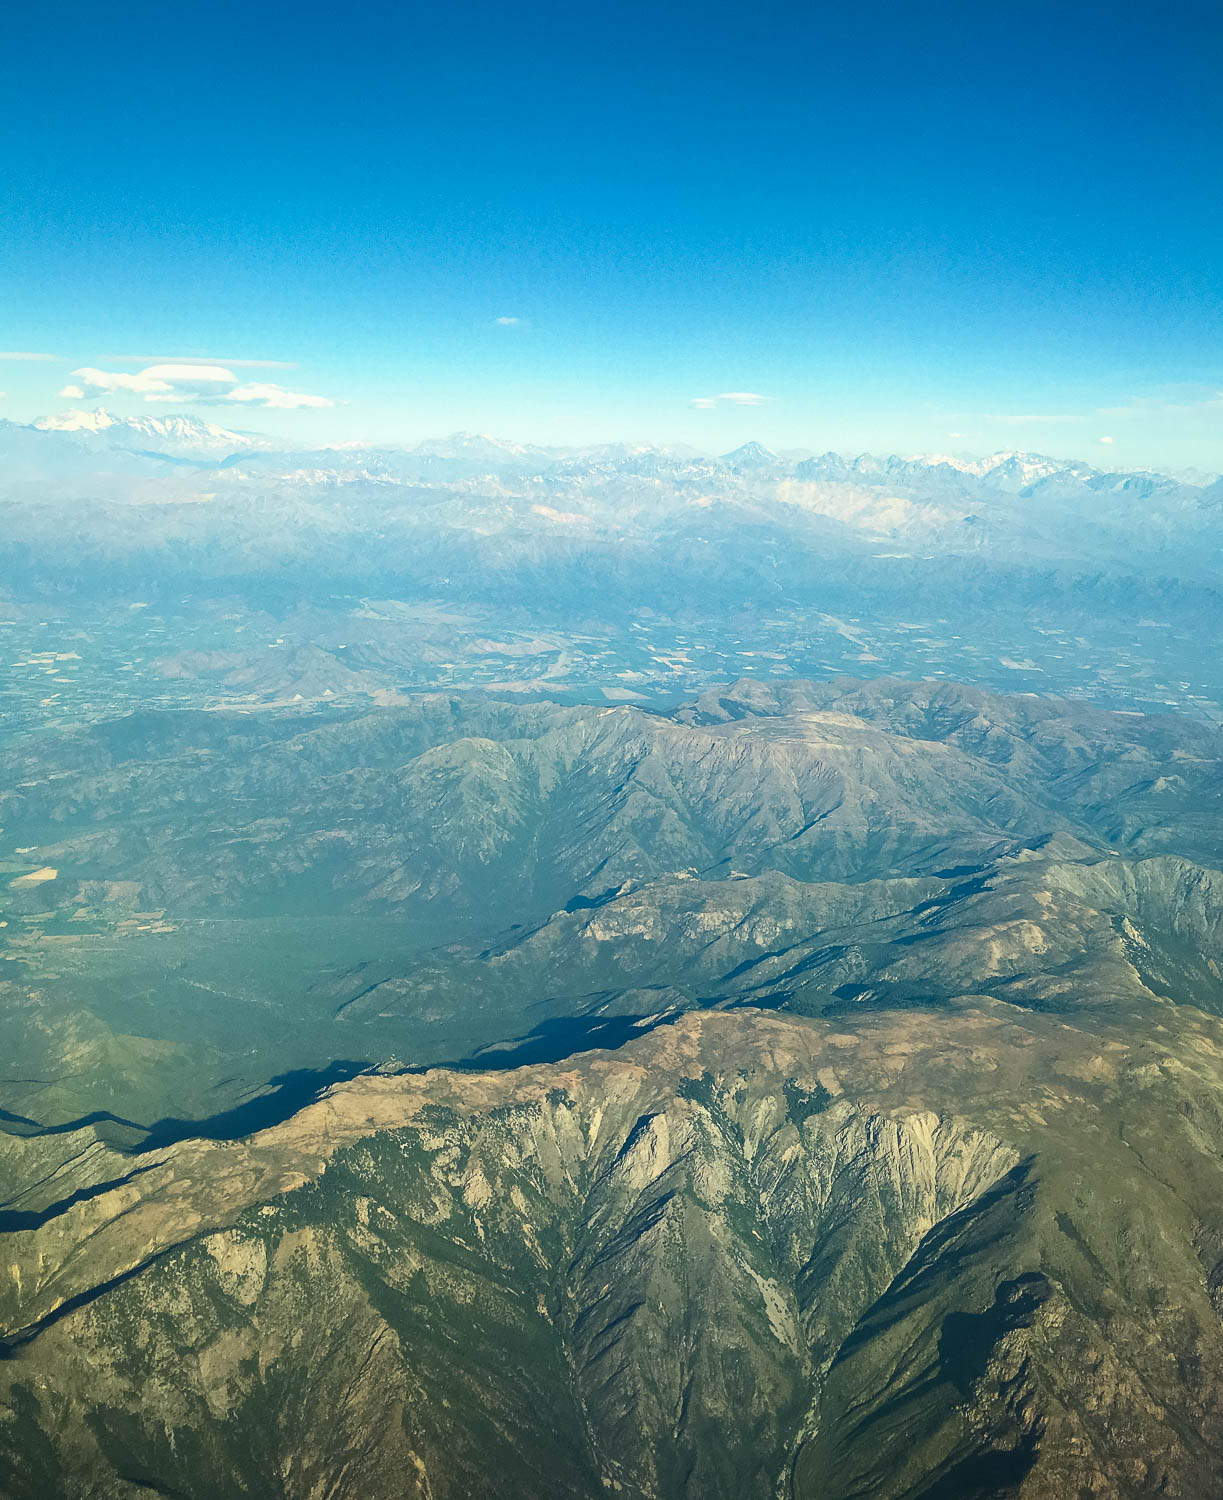 Above: View from plane arriving Santiago, Chile.